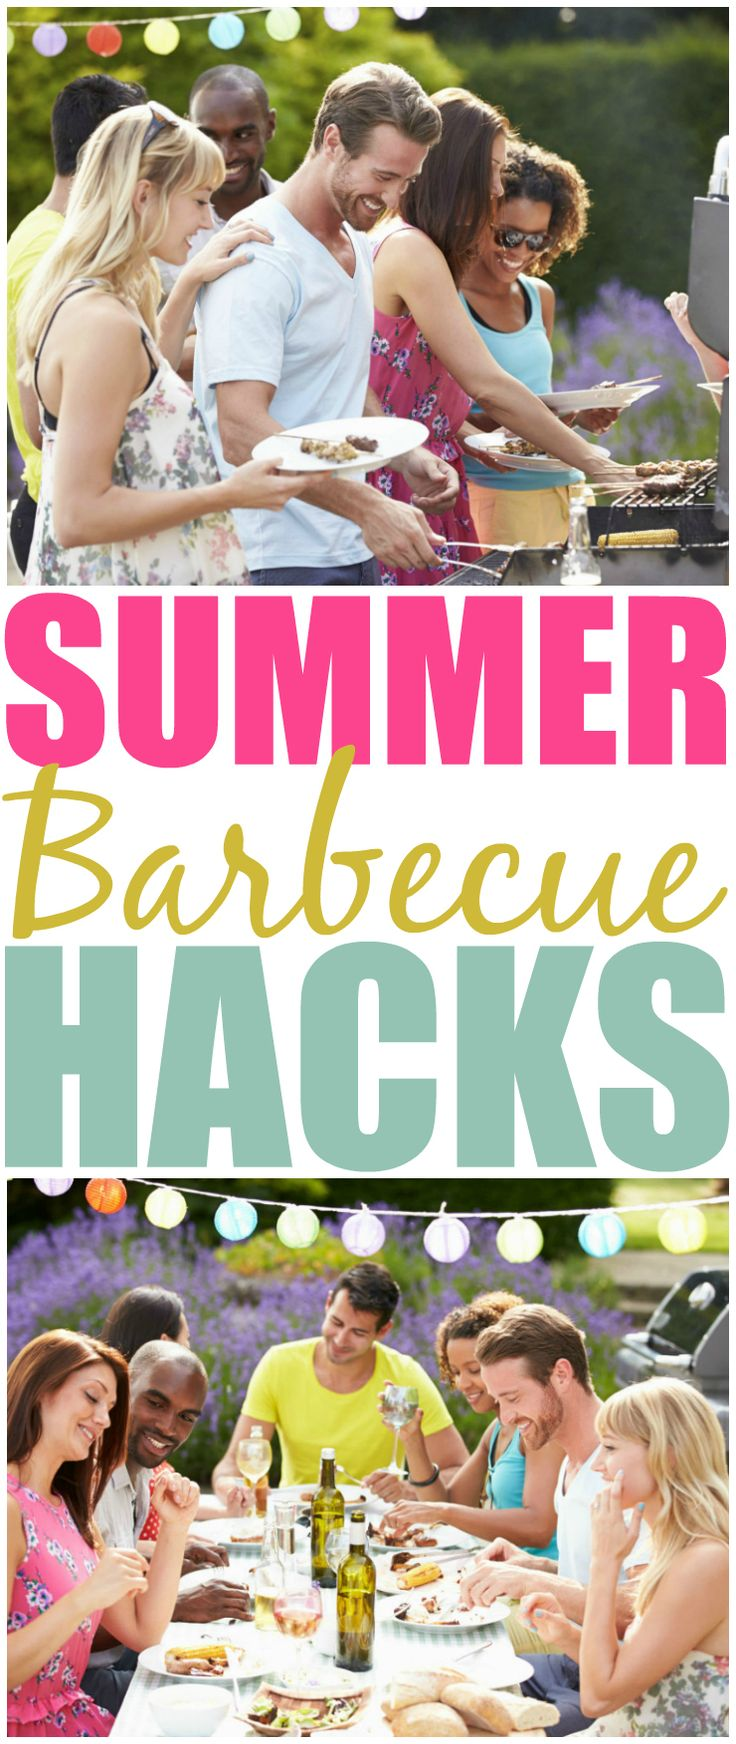 Before you plan your next big backyard cookout check out these awesome BBQ hacks that will transform your party & have it run smoothly from start to finish.